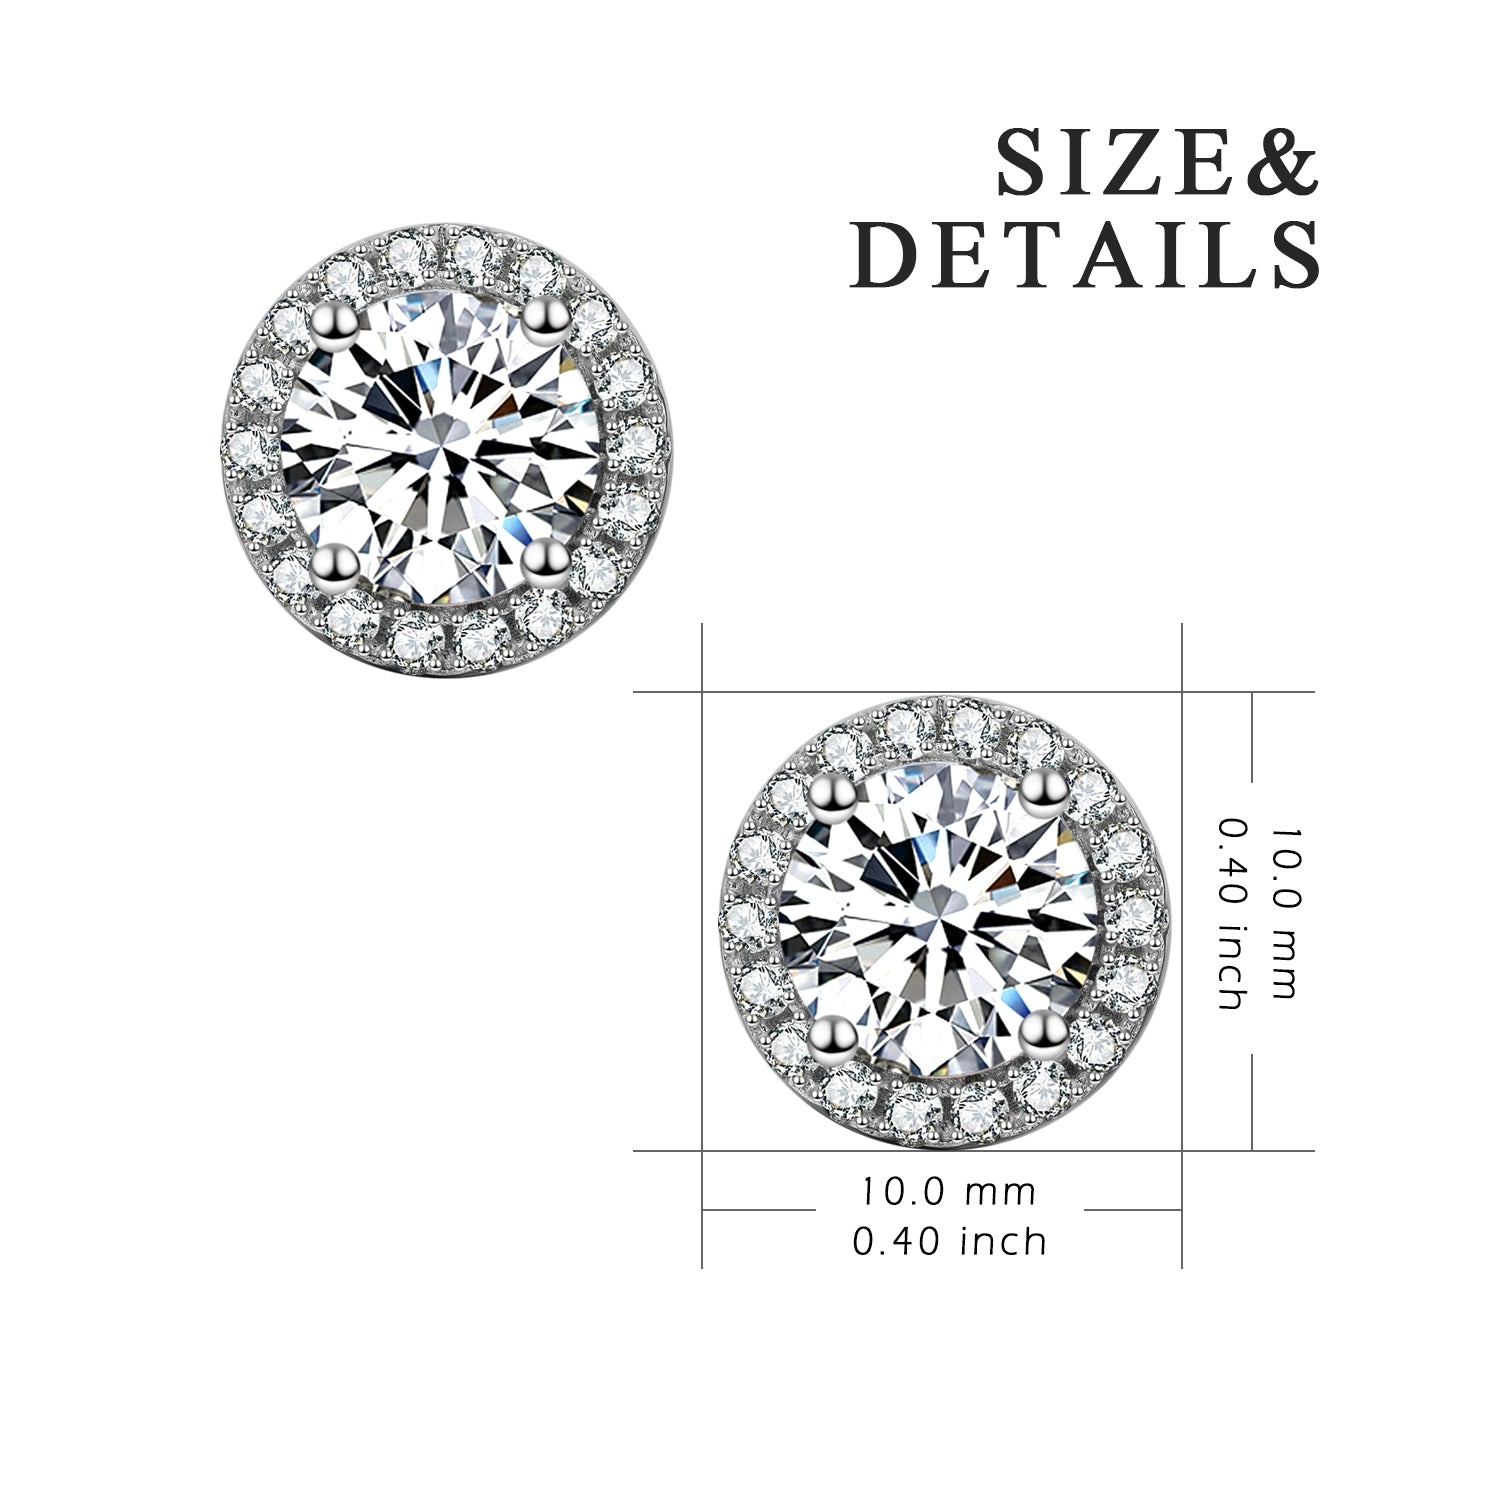 Round Little High Quality Cubic Zirconia Earrings Beautiful Stone Stud Earrings